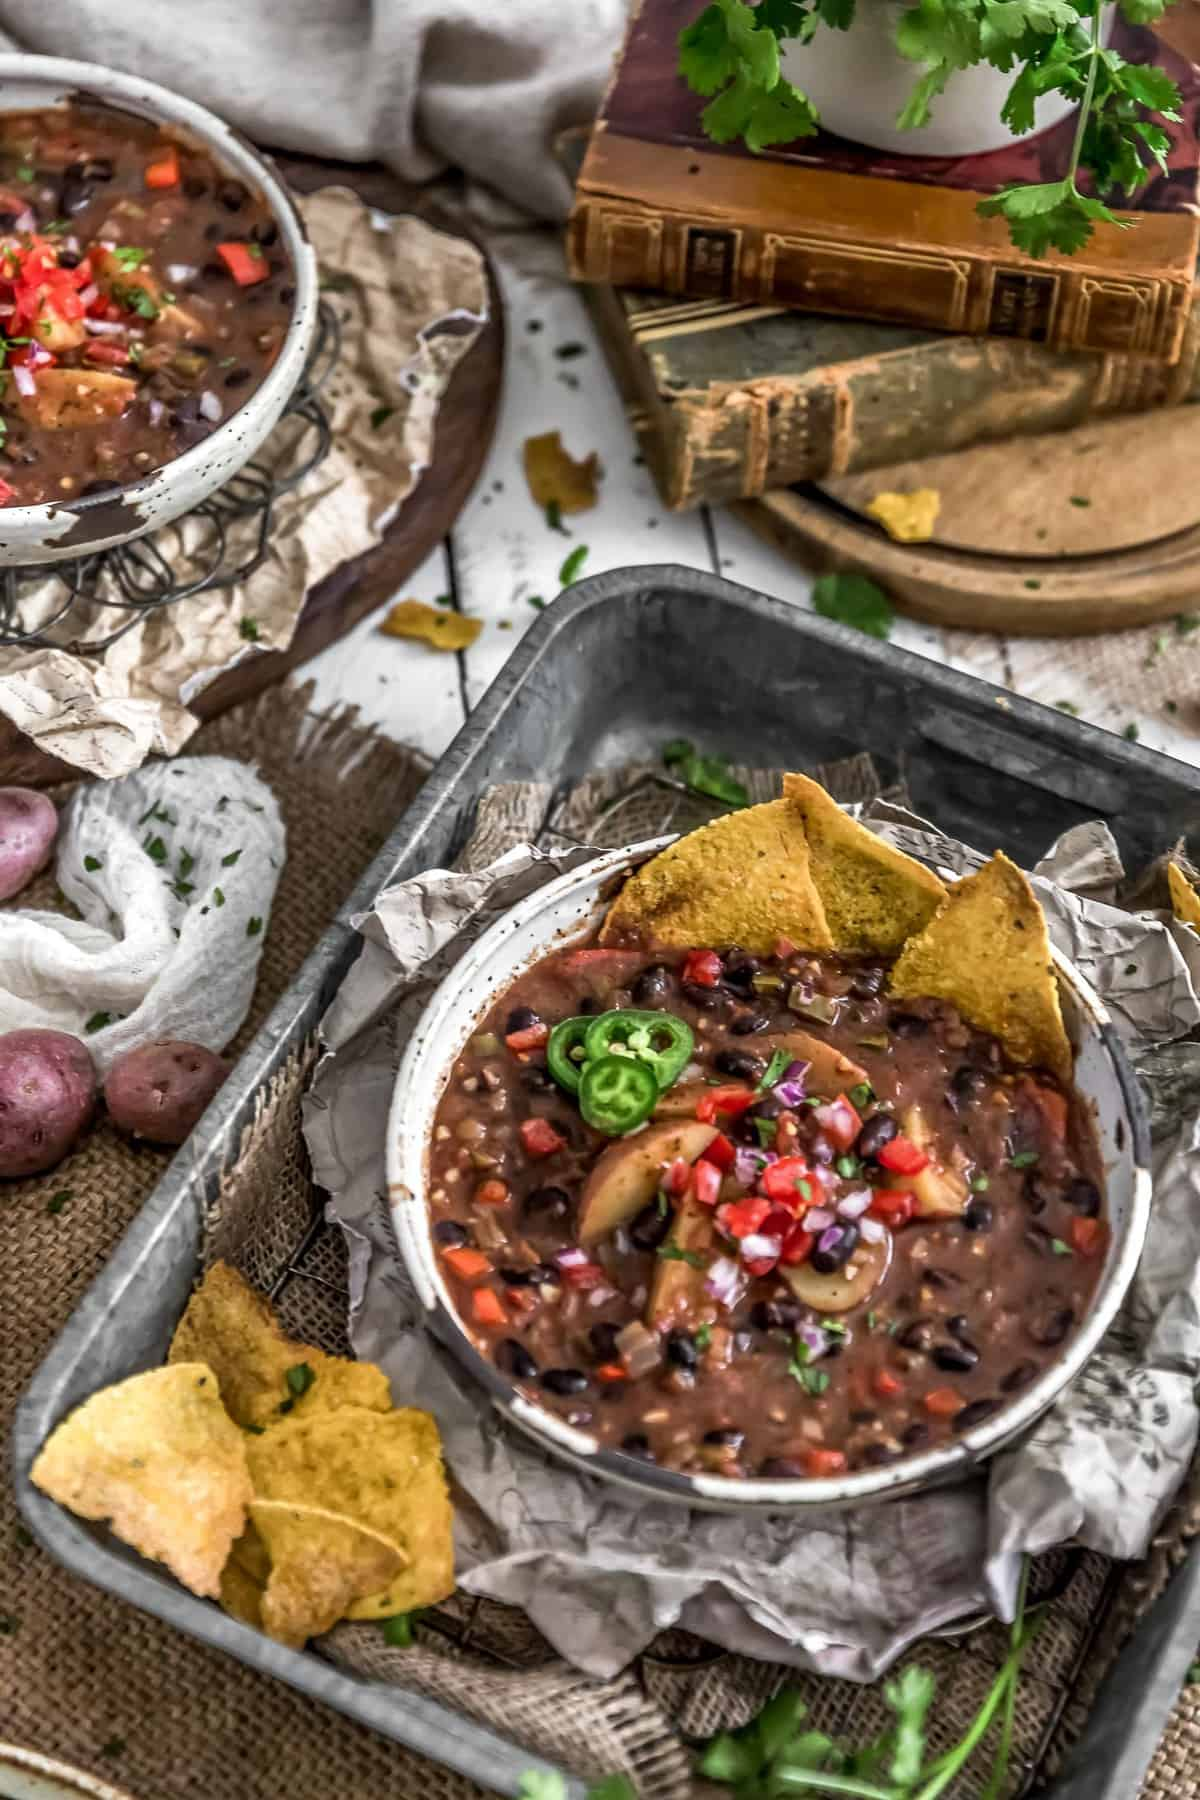 Tablescape of Spicy Black Bean Potato Stew